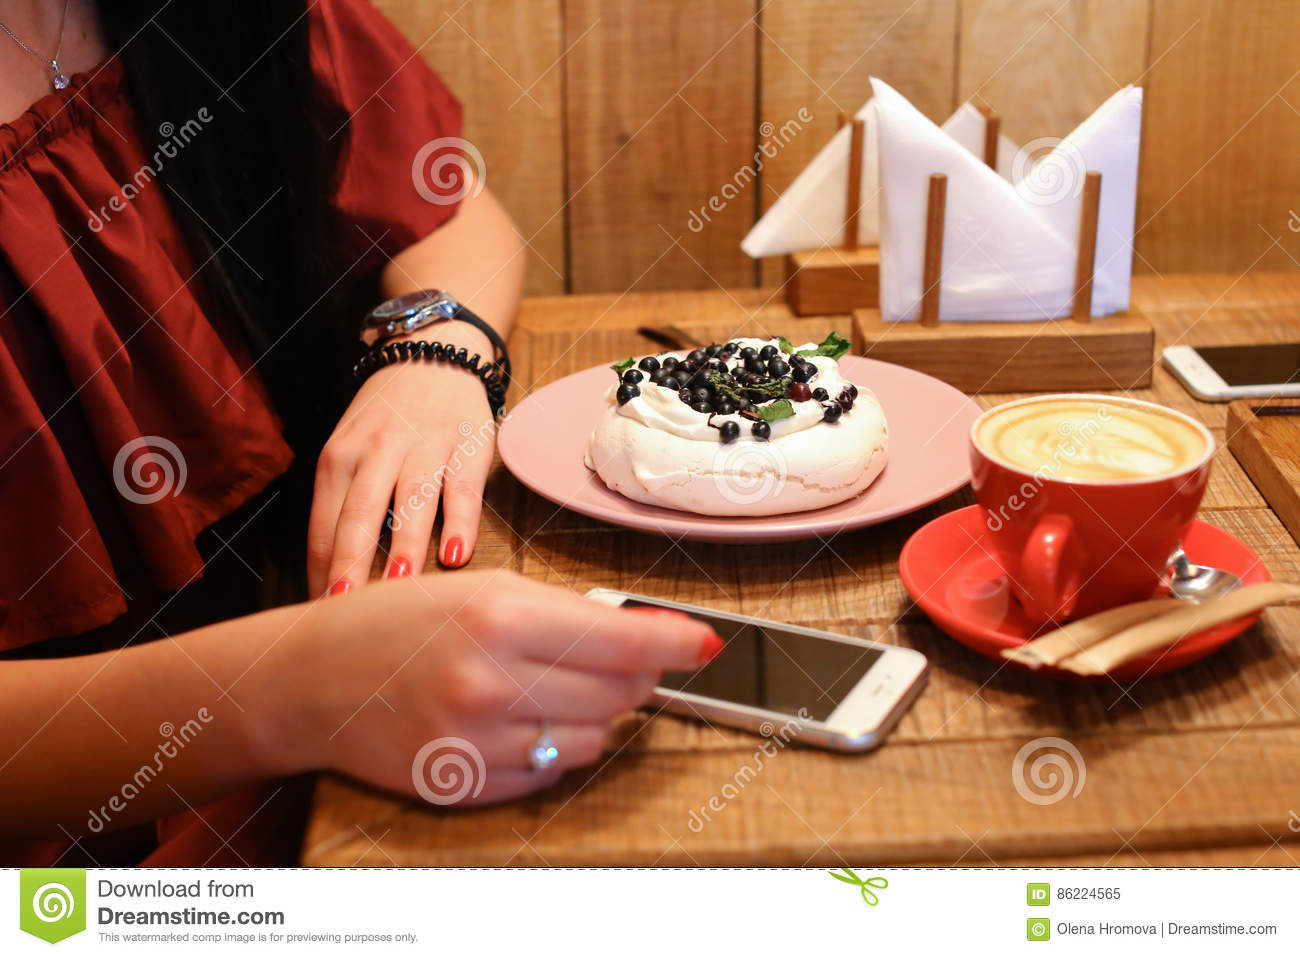 Girl sits and holds hands at table next to order of meringues, c